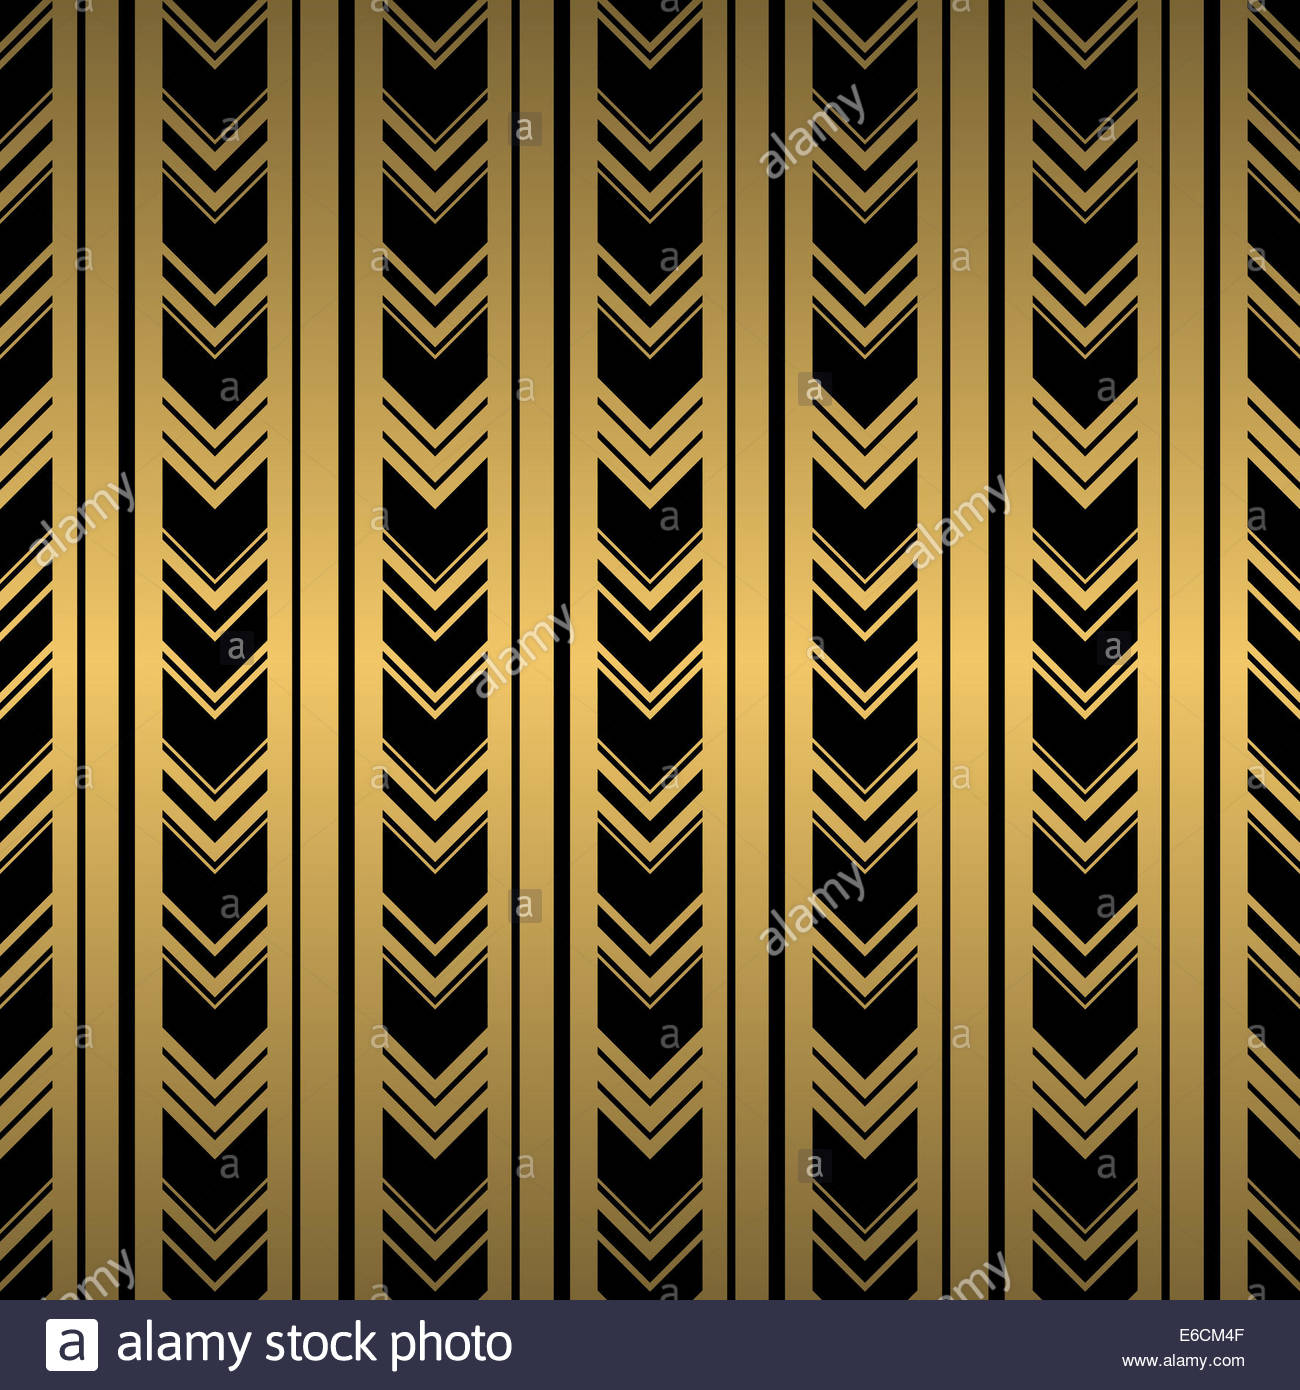 Black And Gold Seamless Background Repeat Patterned Wallpaper Design